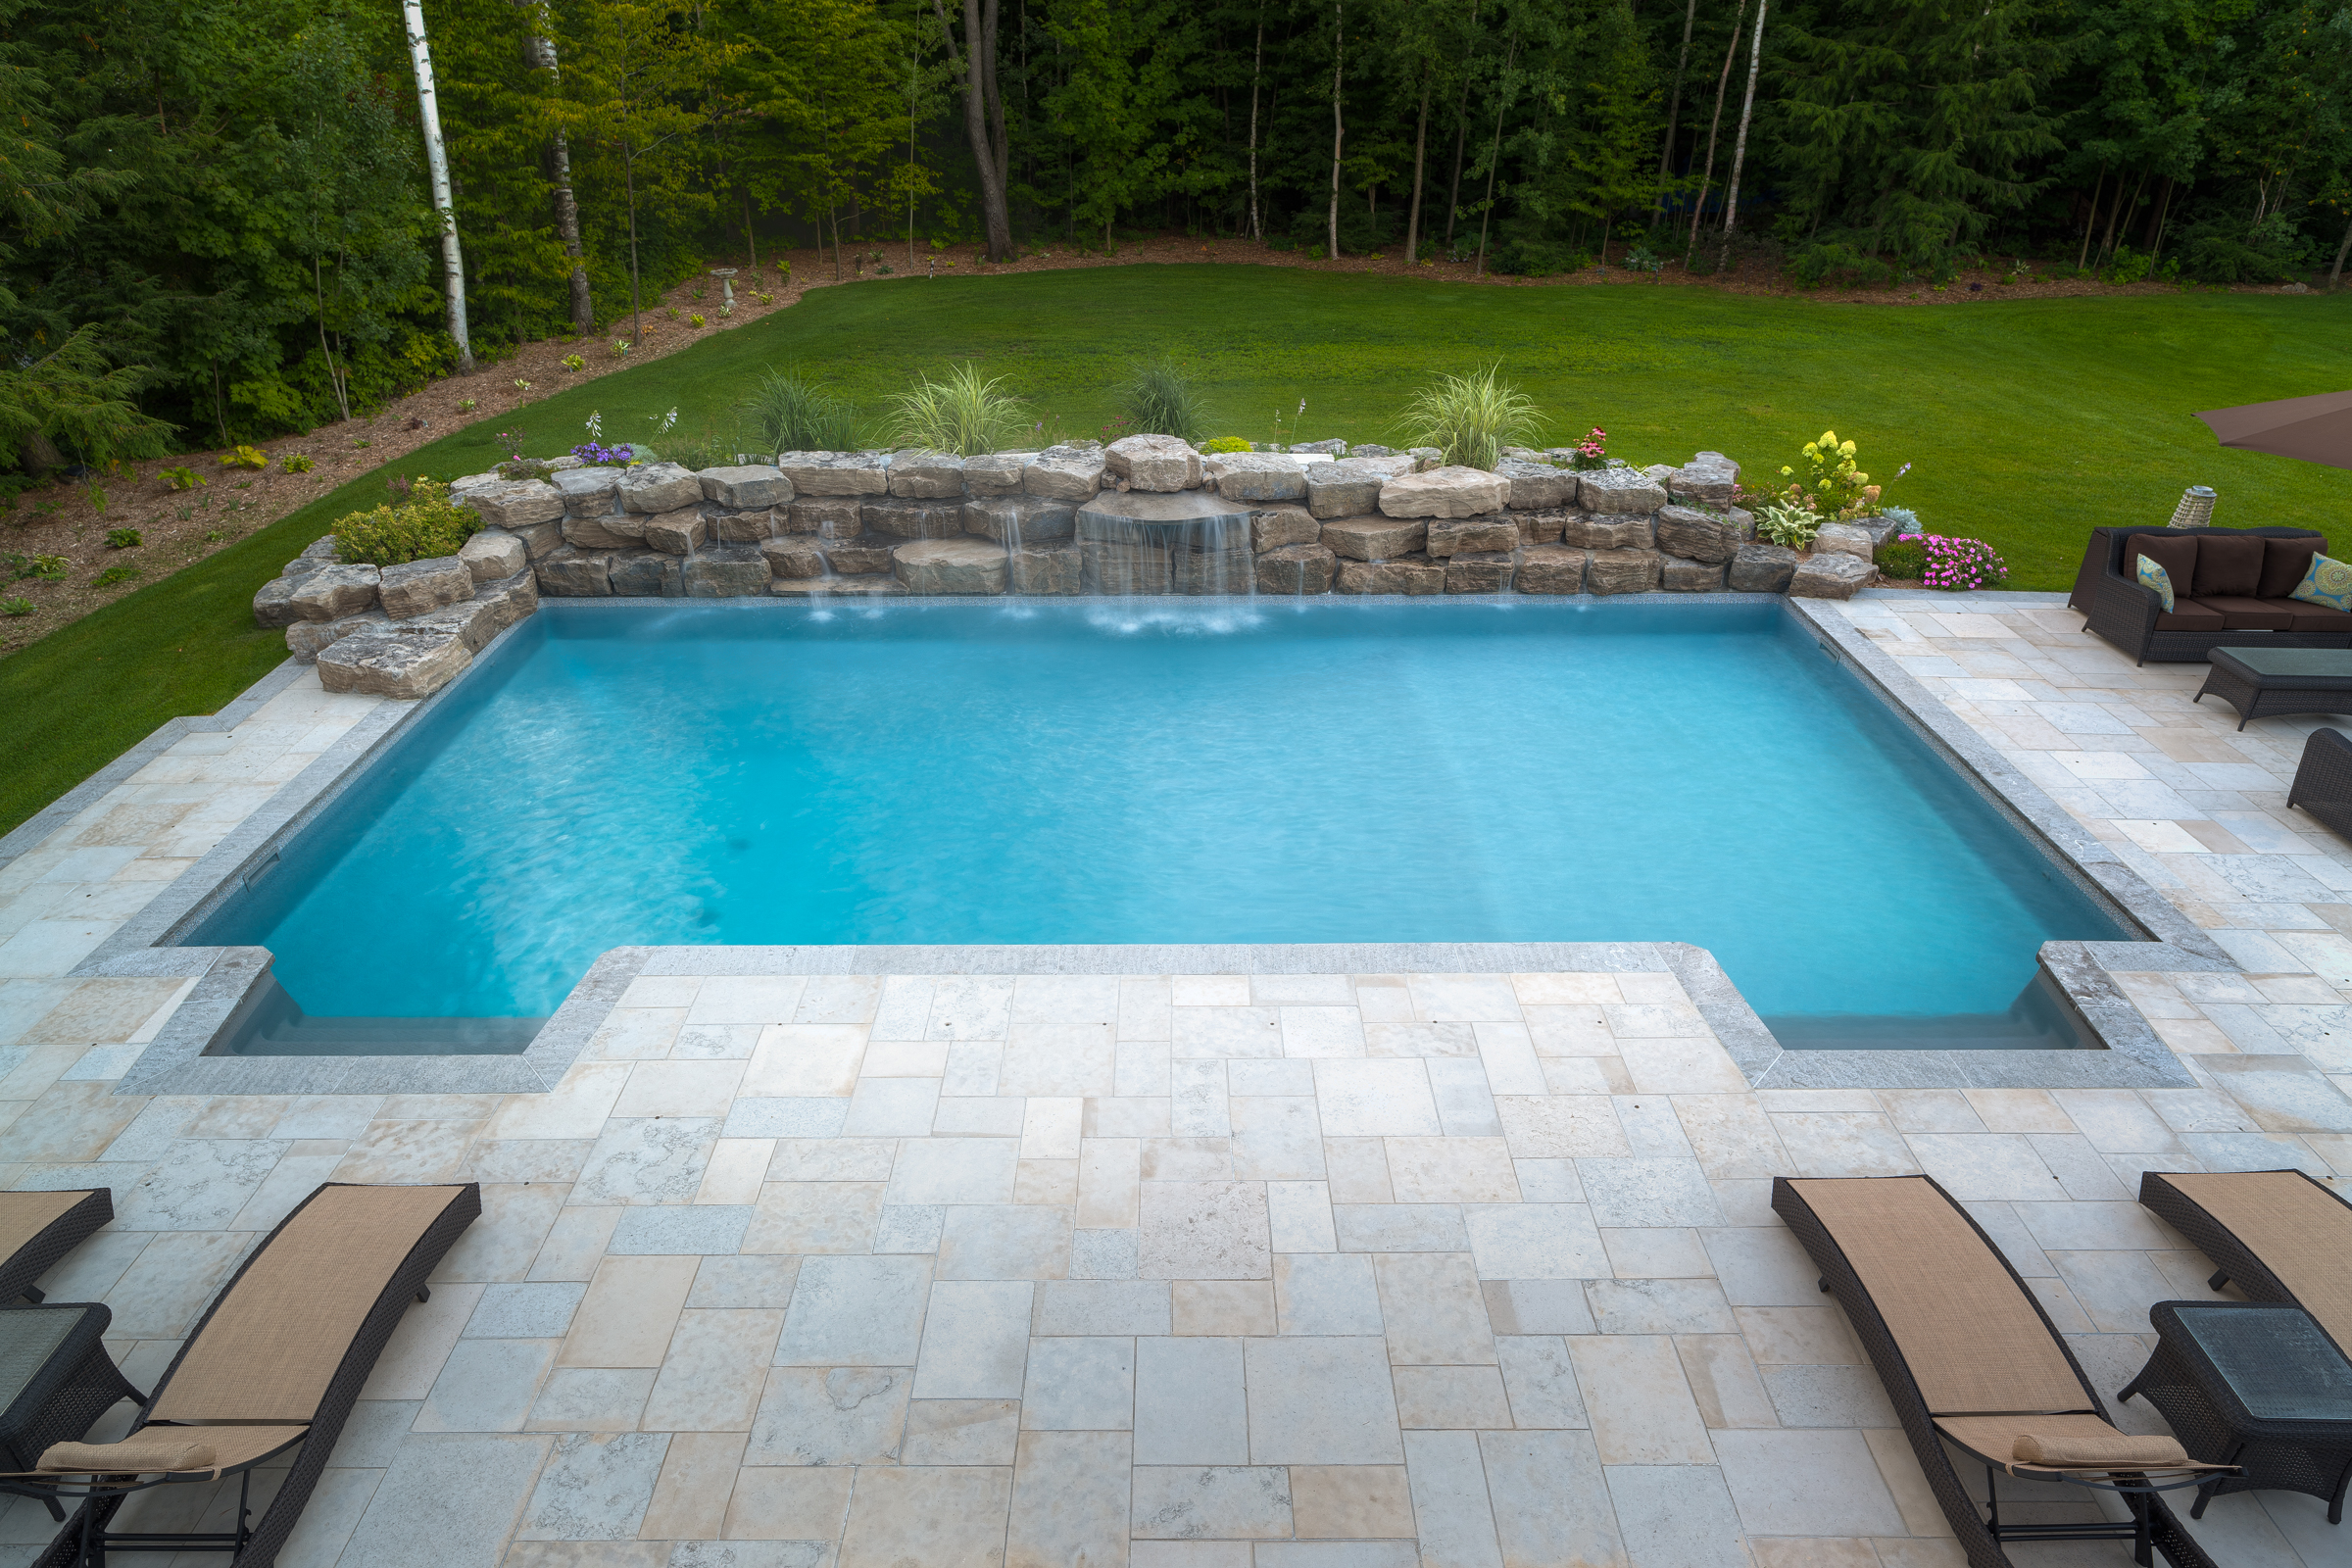 20X40 RECTANGLE POOL WITH WATERFALL